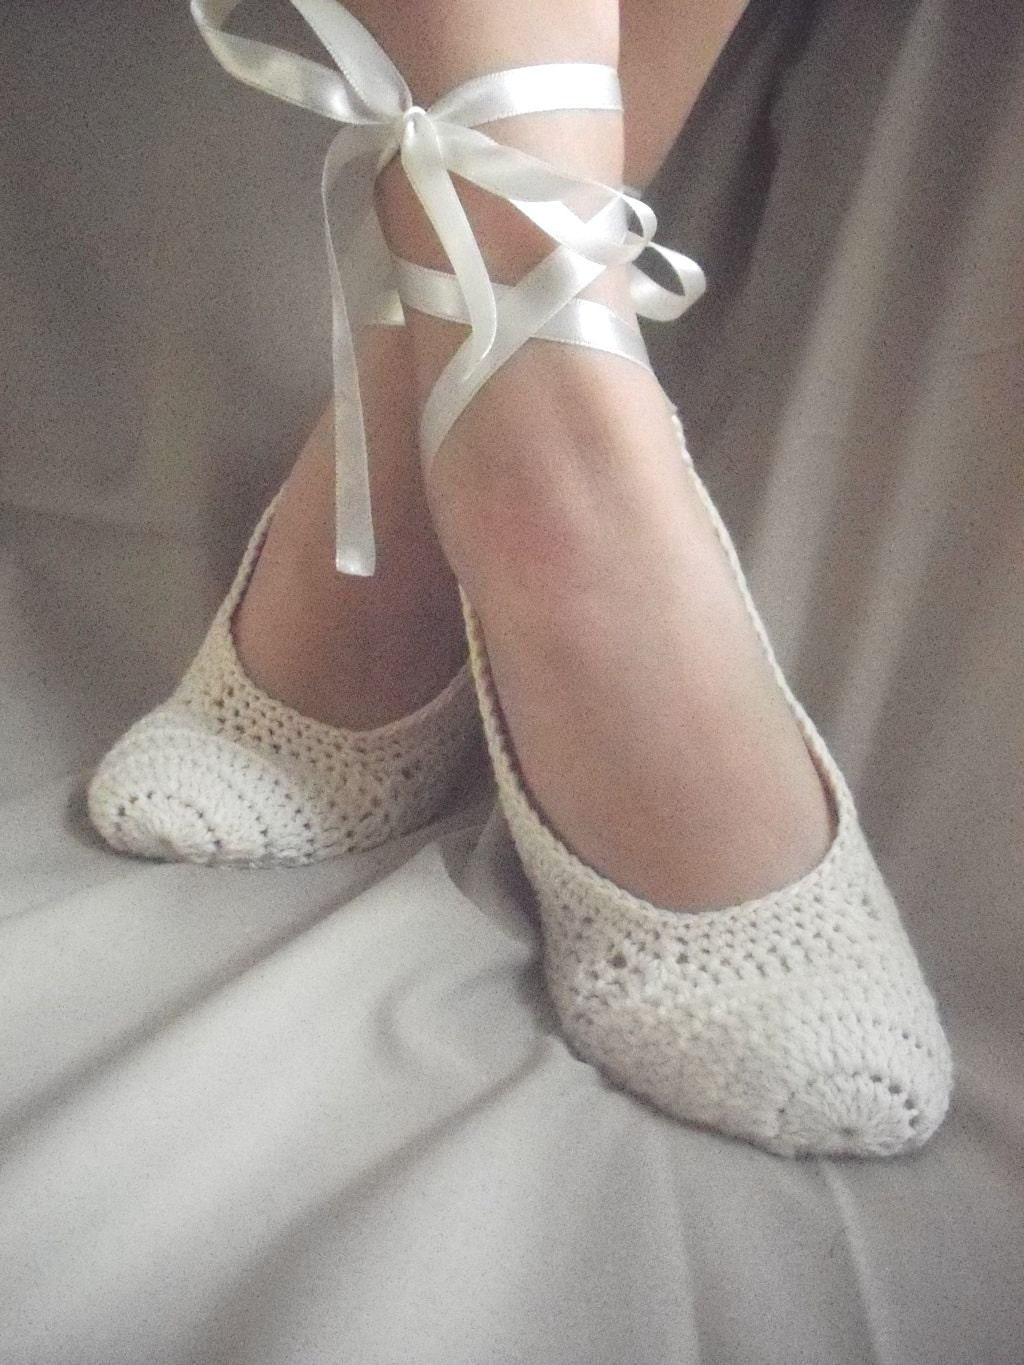 Wedding Dance Shoes Slippers Cream Bridal Party Bridesmaid